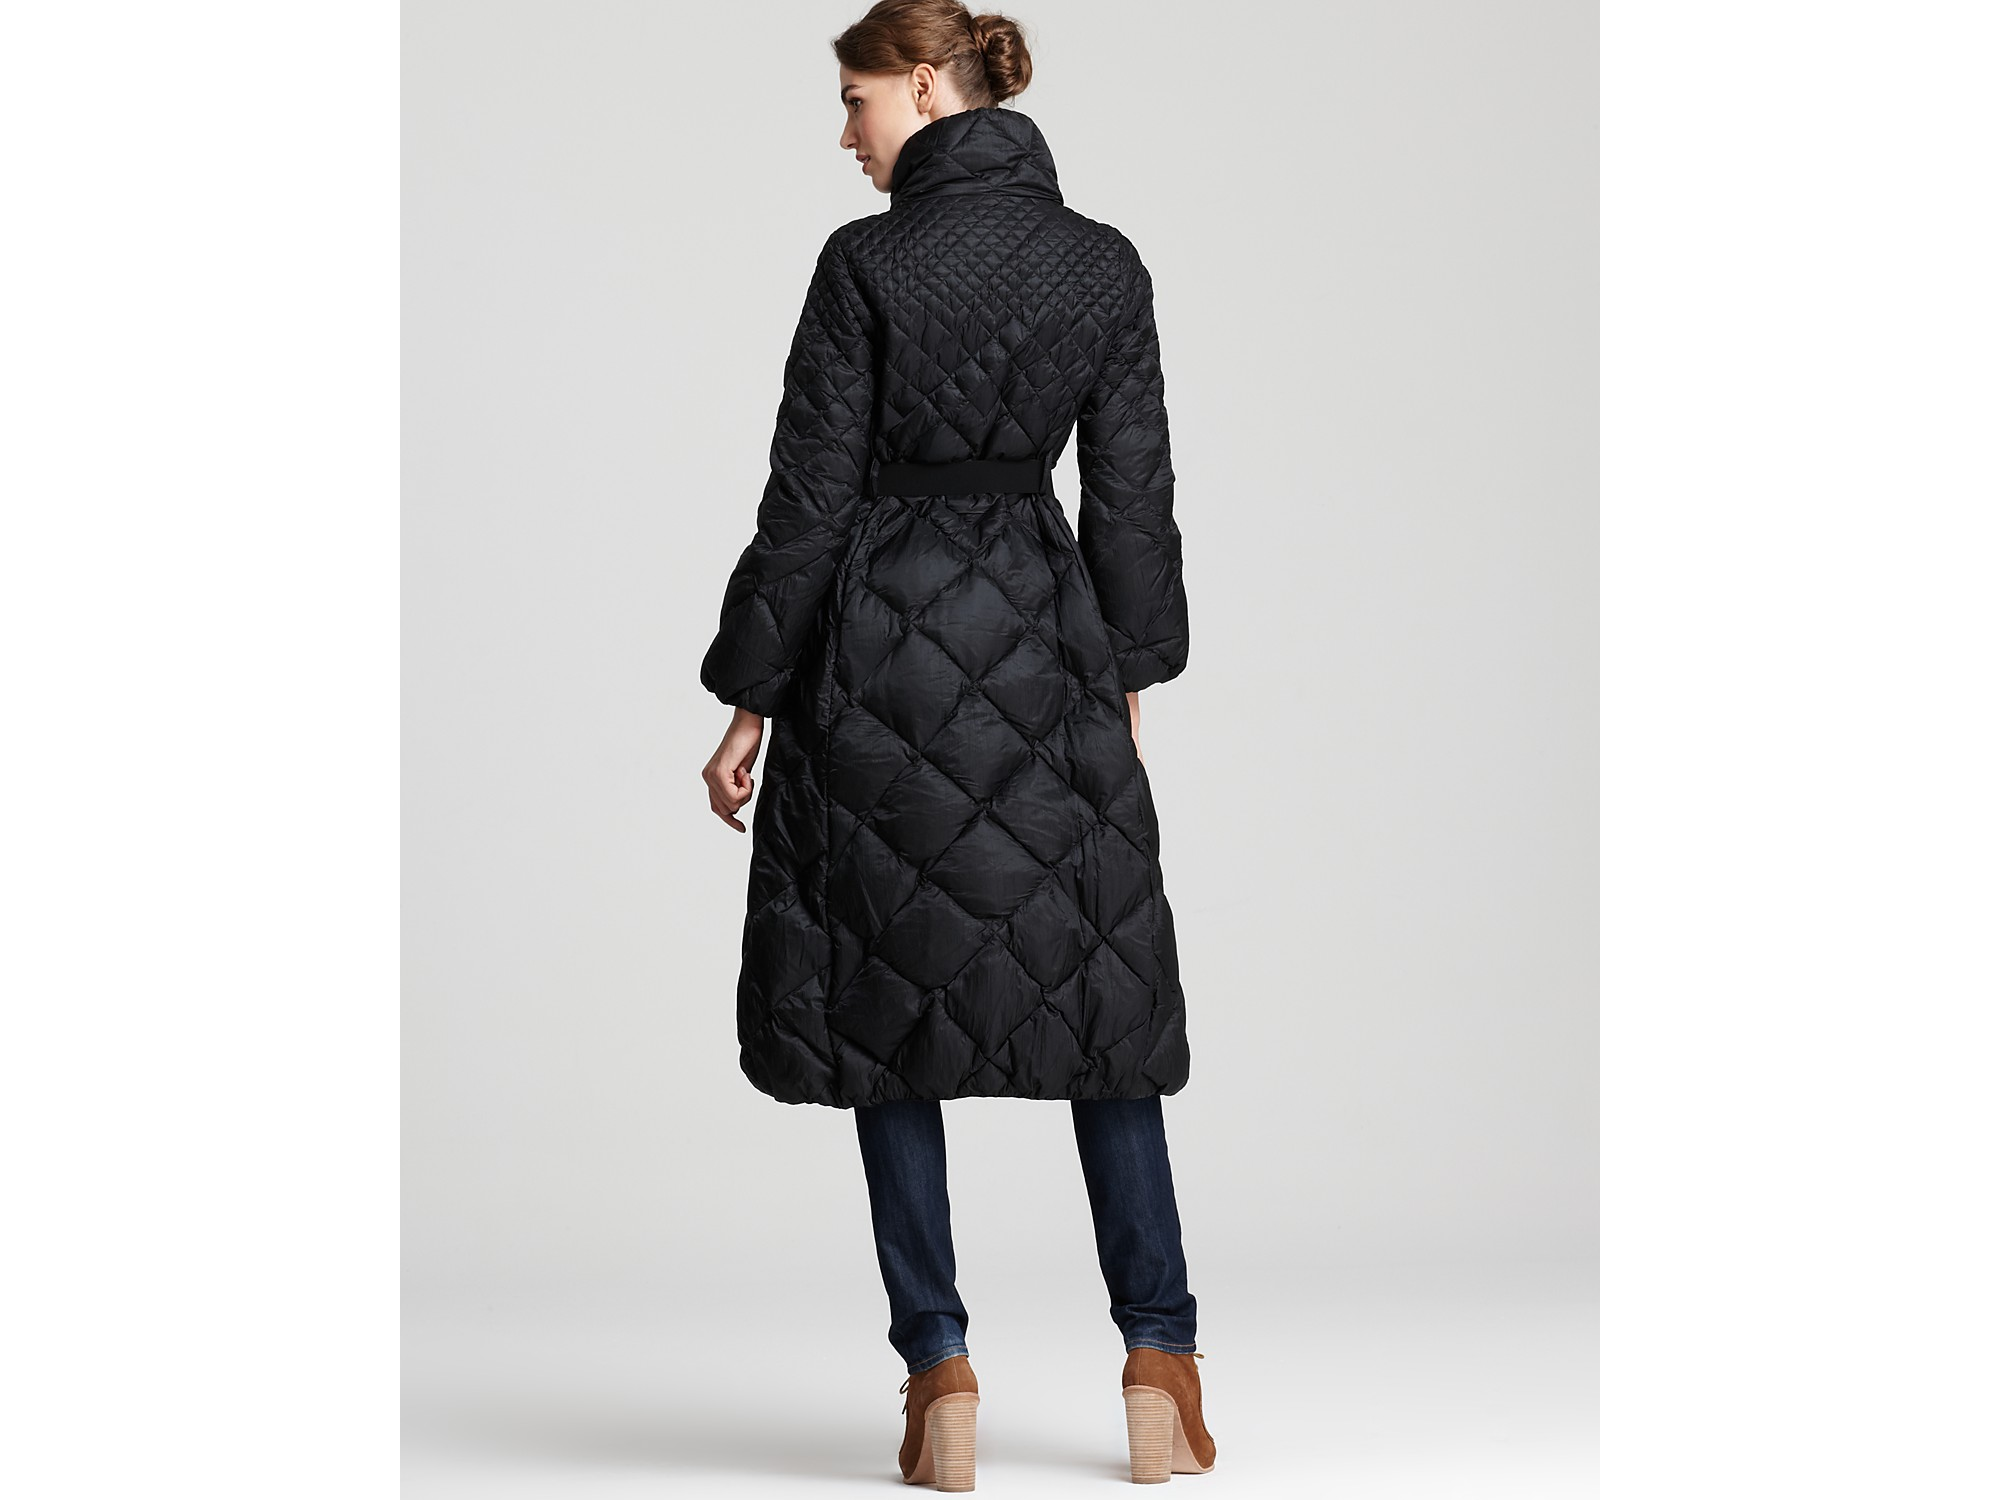 QUILTED PARKA WITH HOOD. WARM PUFFER JACKETS FOR WOMEN. Down jackets provide extra warmth, while lightweight pieces take up almost no space and are ideal for travelling. This season, combine your puffer jacket with an elegant garment for an original urban look.